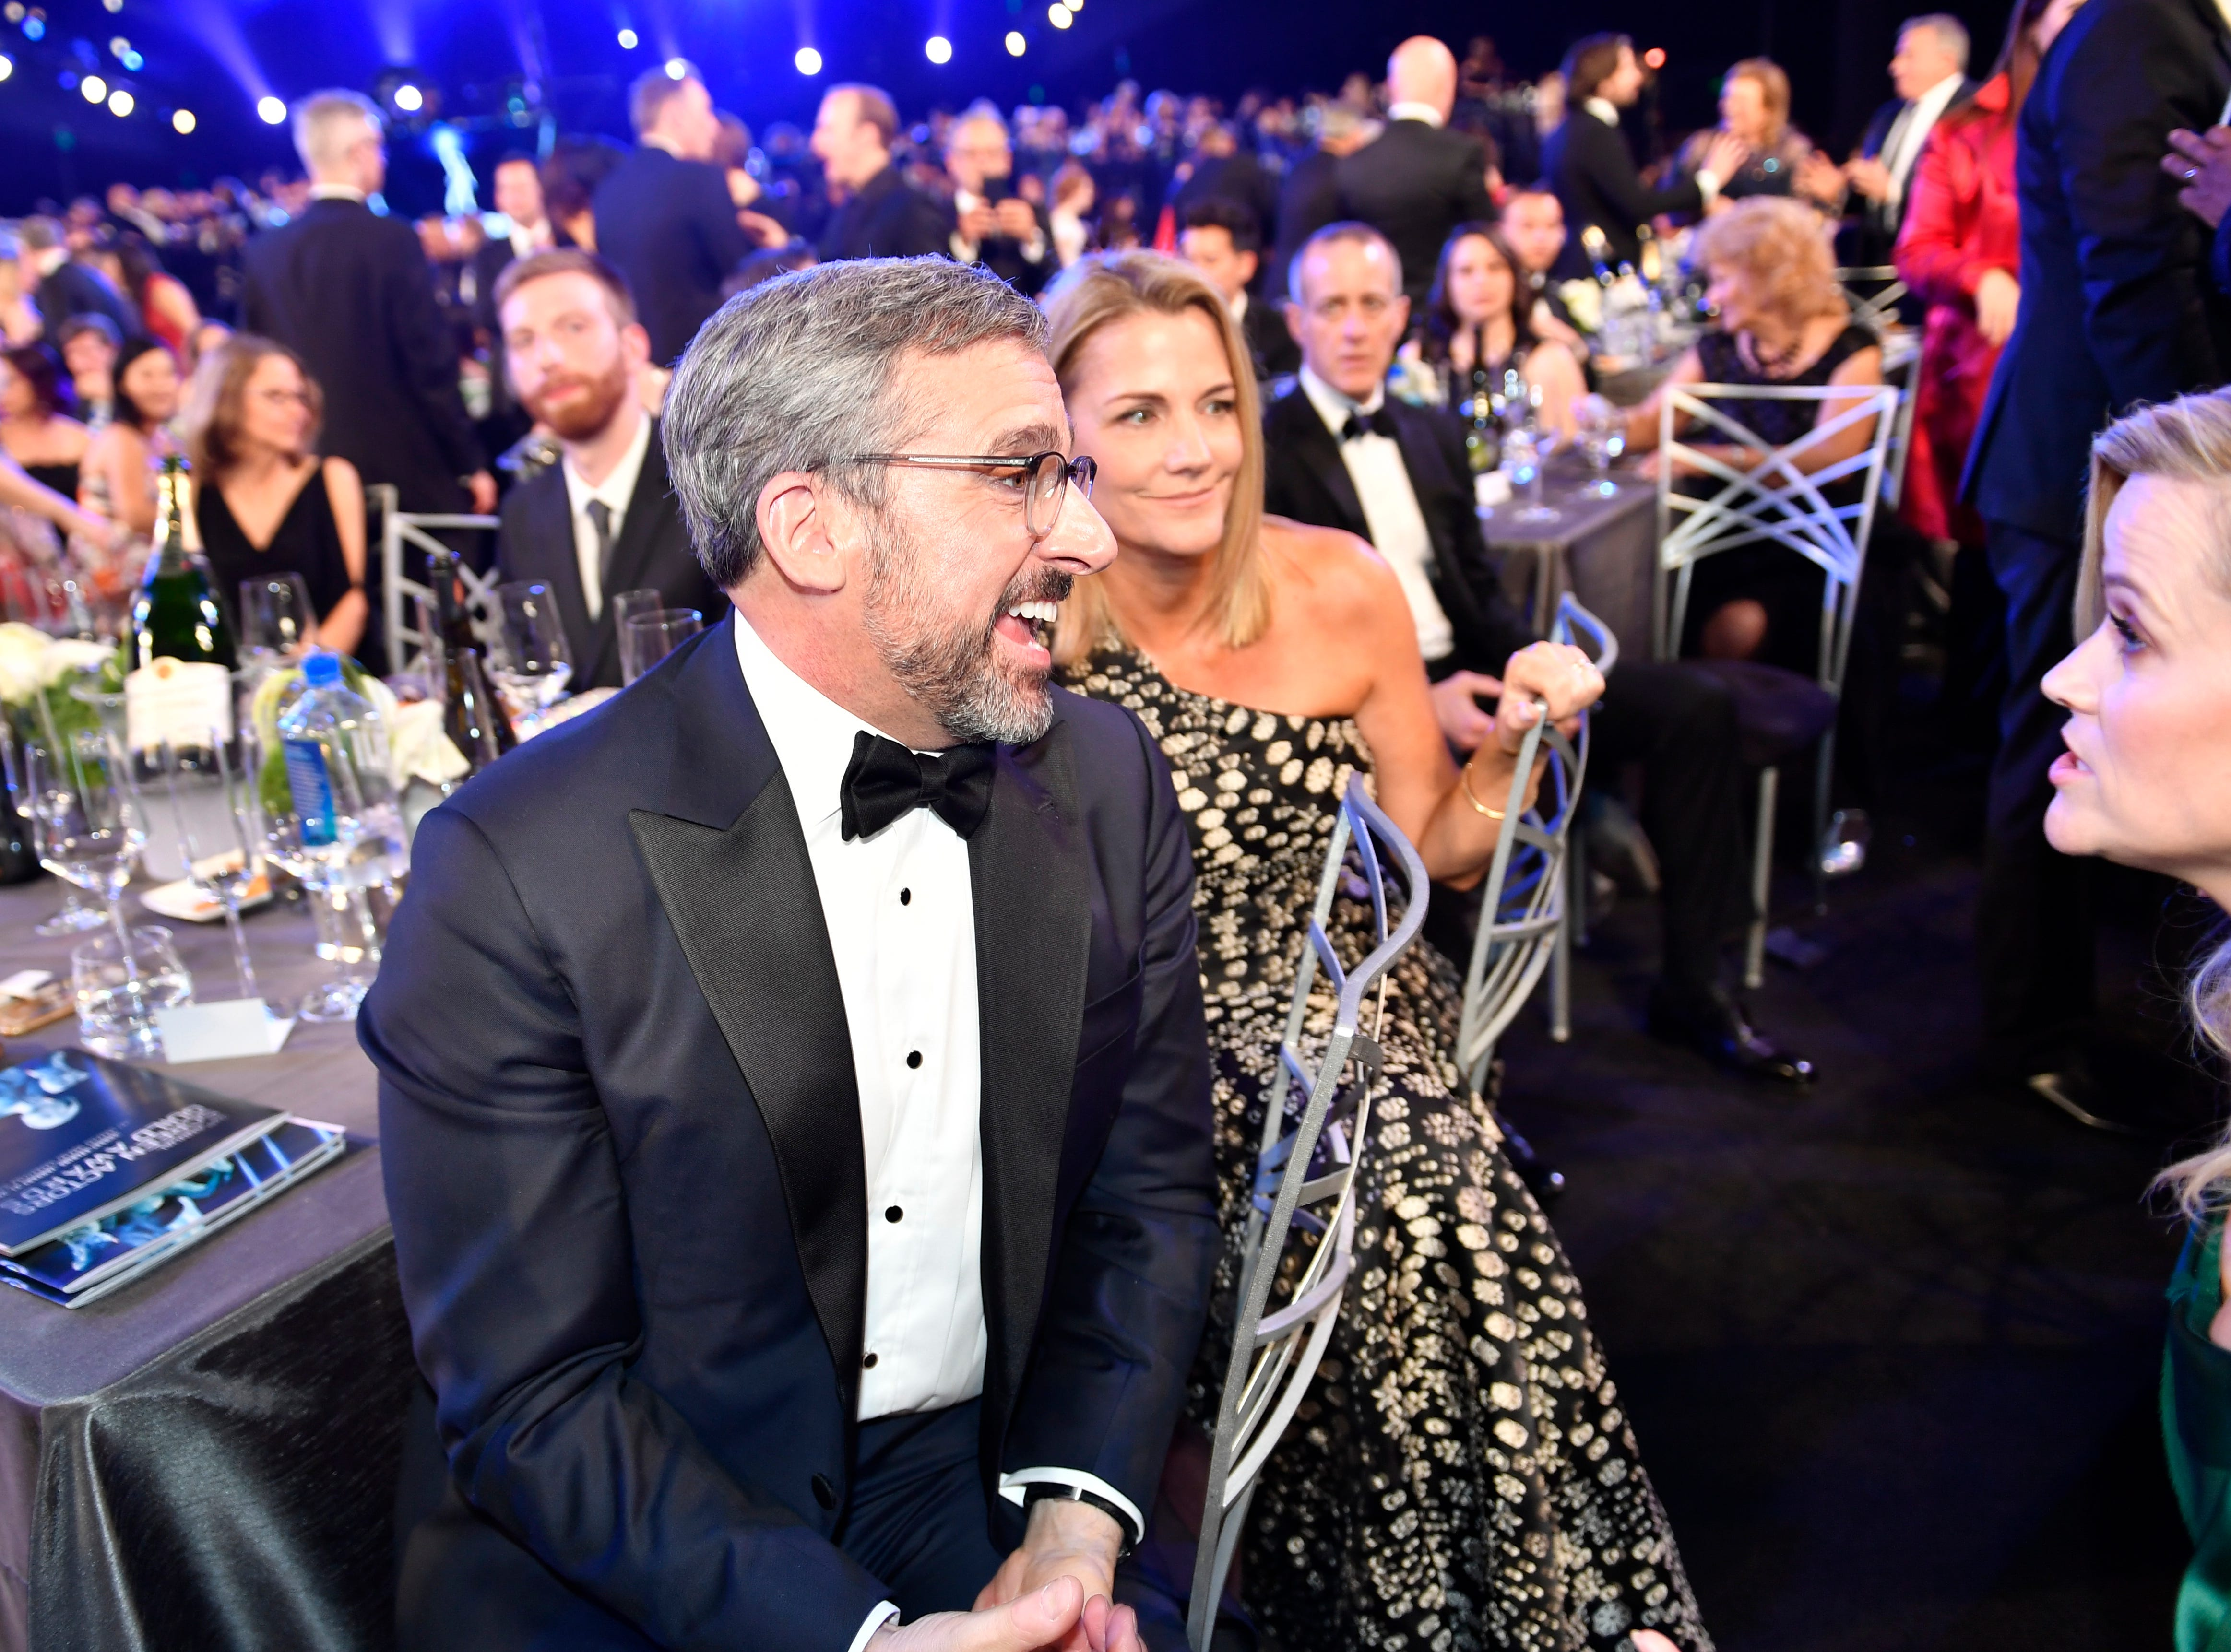 Jan. 21: Steve Carell and Reese Witherspoon chat during a commercial break at the SAG Awards.